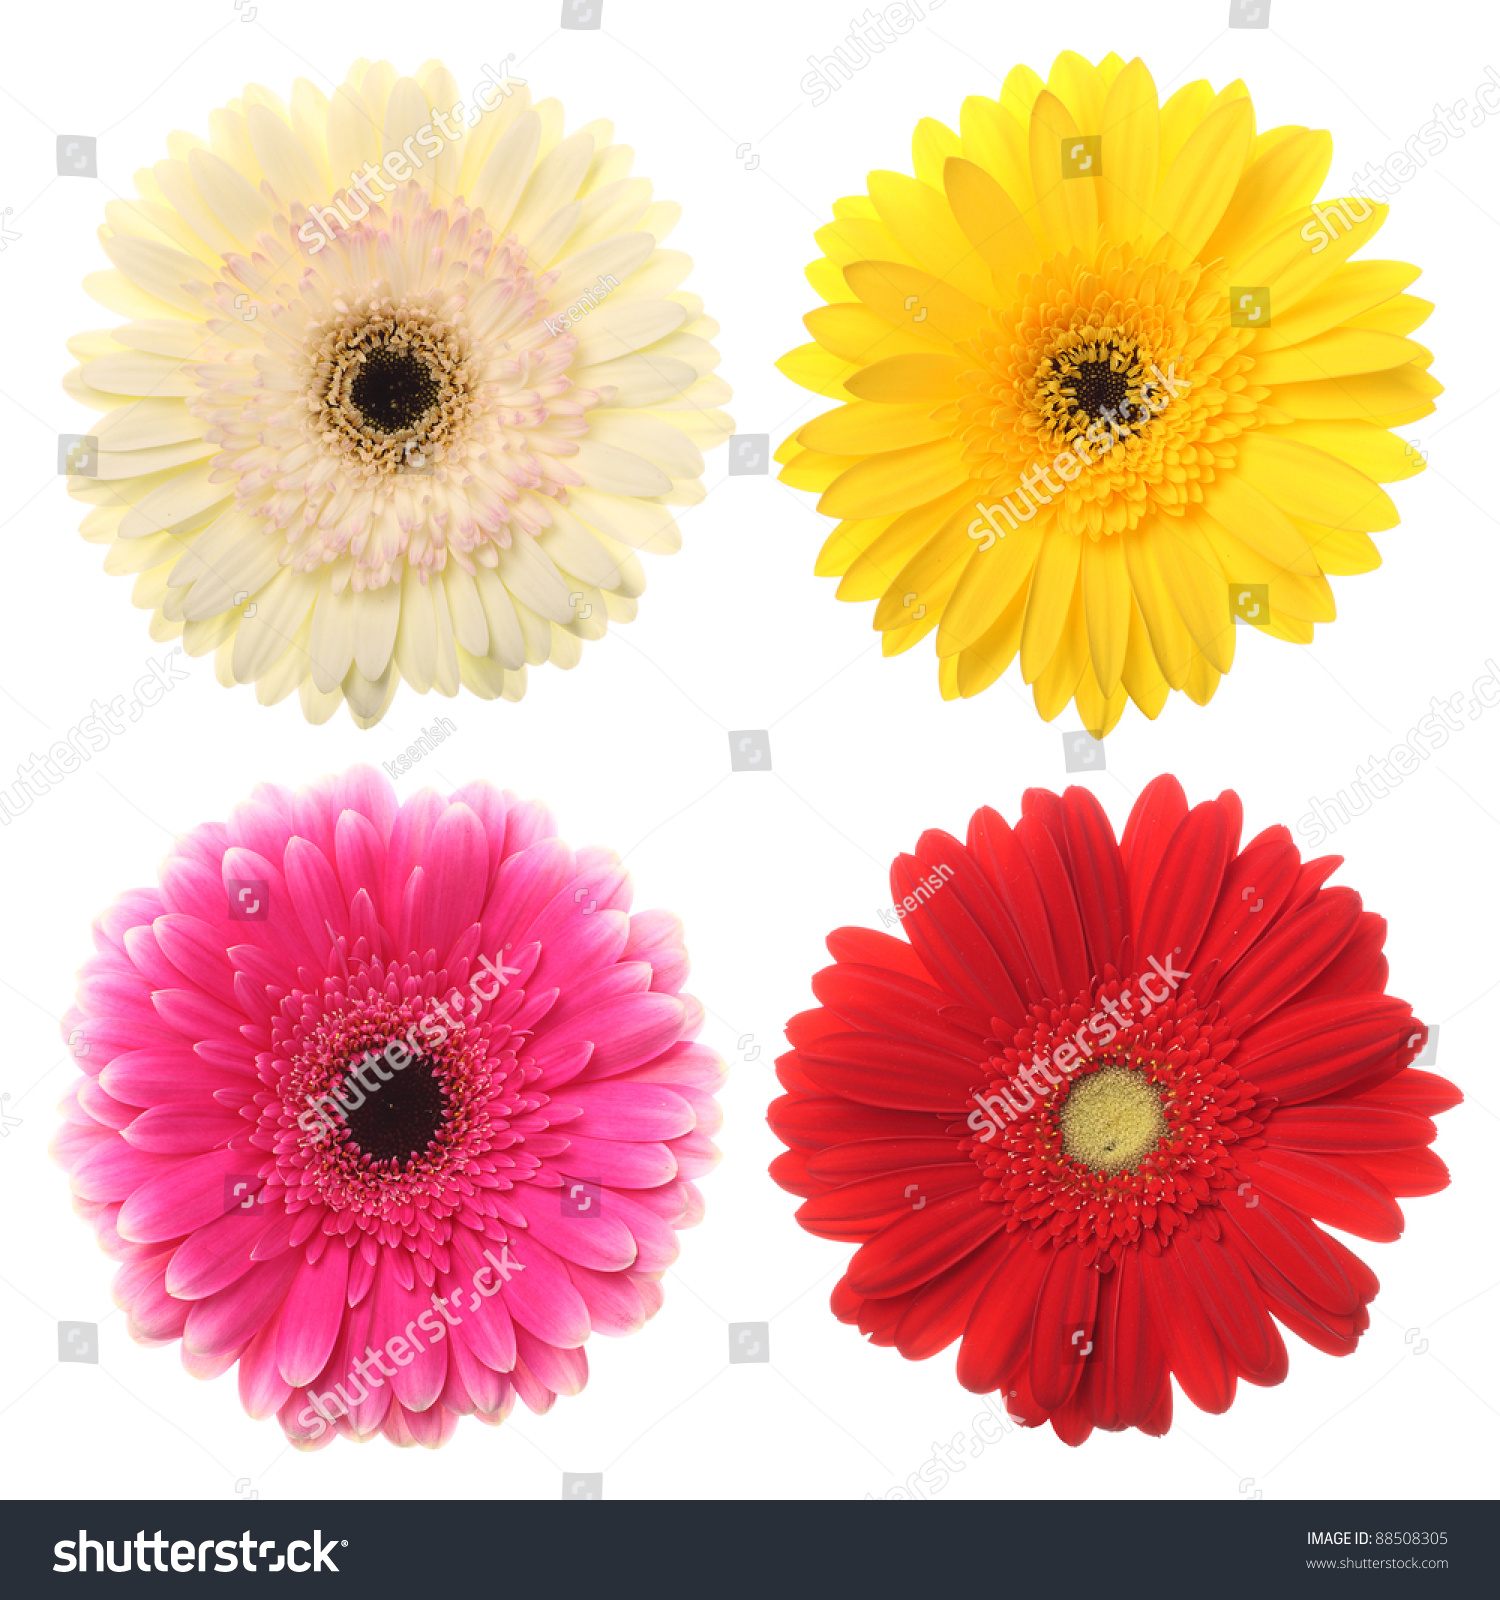 Colorful daisy flowers your designs on stock photo edit now colorful daisy flowers for your designs on white izmirmasajfo